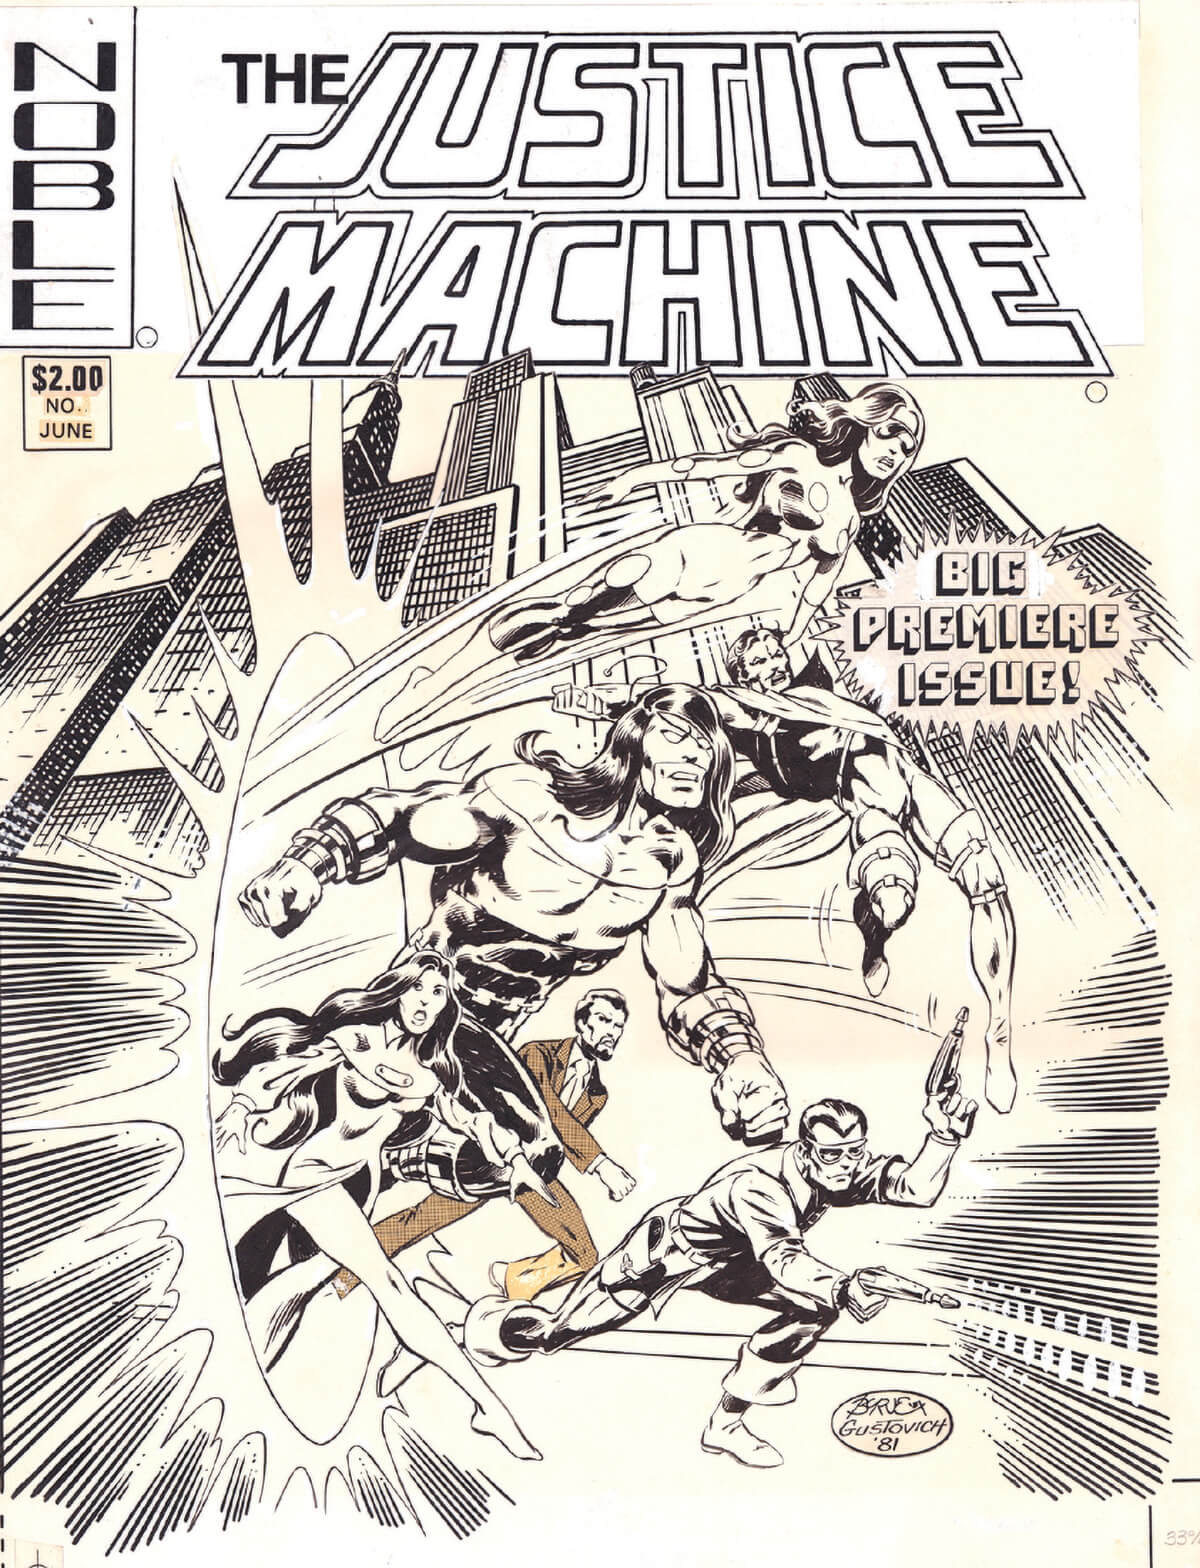 Justice Machine No 1 Cover by Byrne and Gustovich